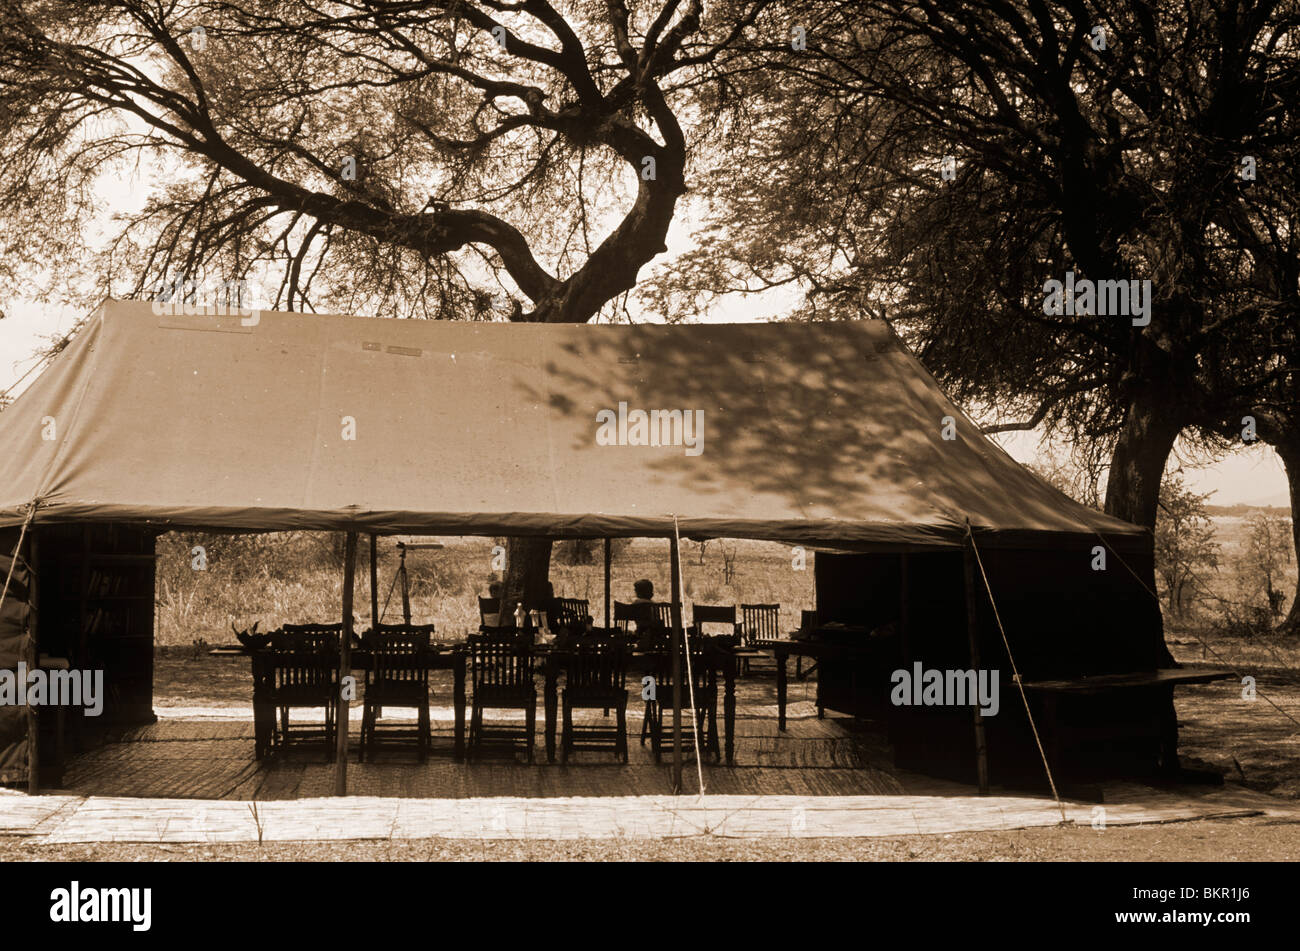 Tanzania Katavi National Park. Mess tent set up for lunch at Chada C& & Tanzania Katavi National Park. Mess tent set up for lunch at ...